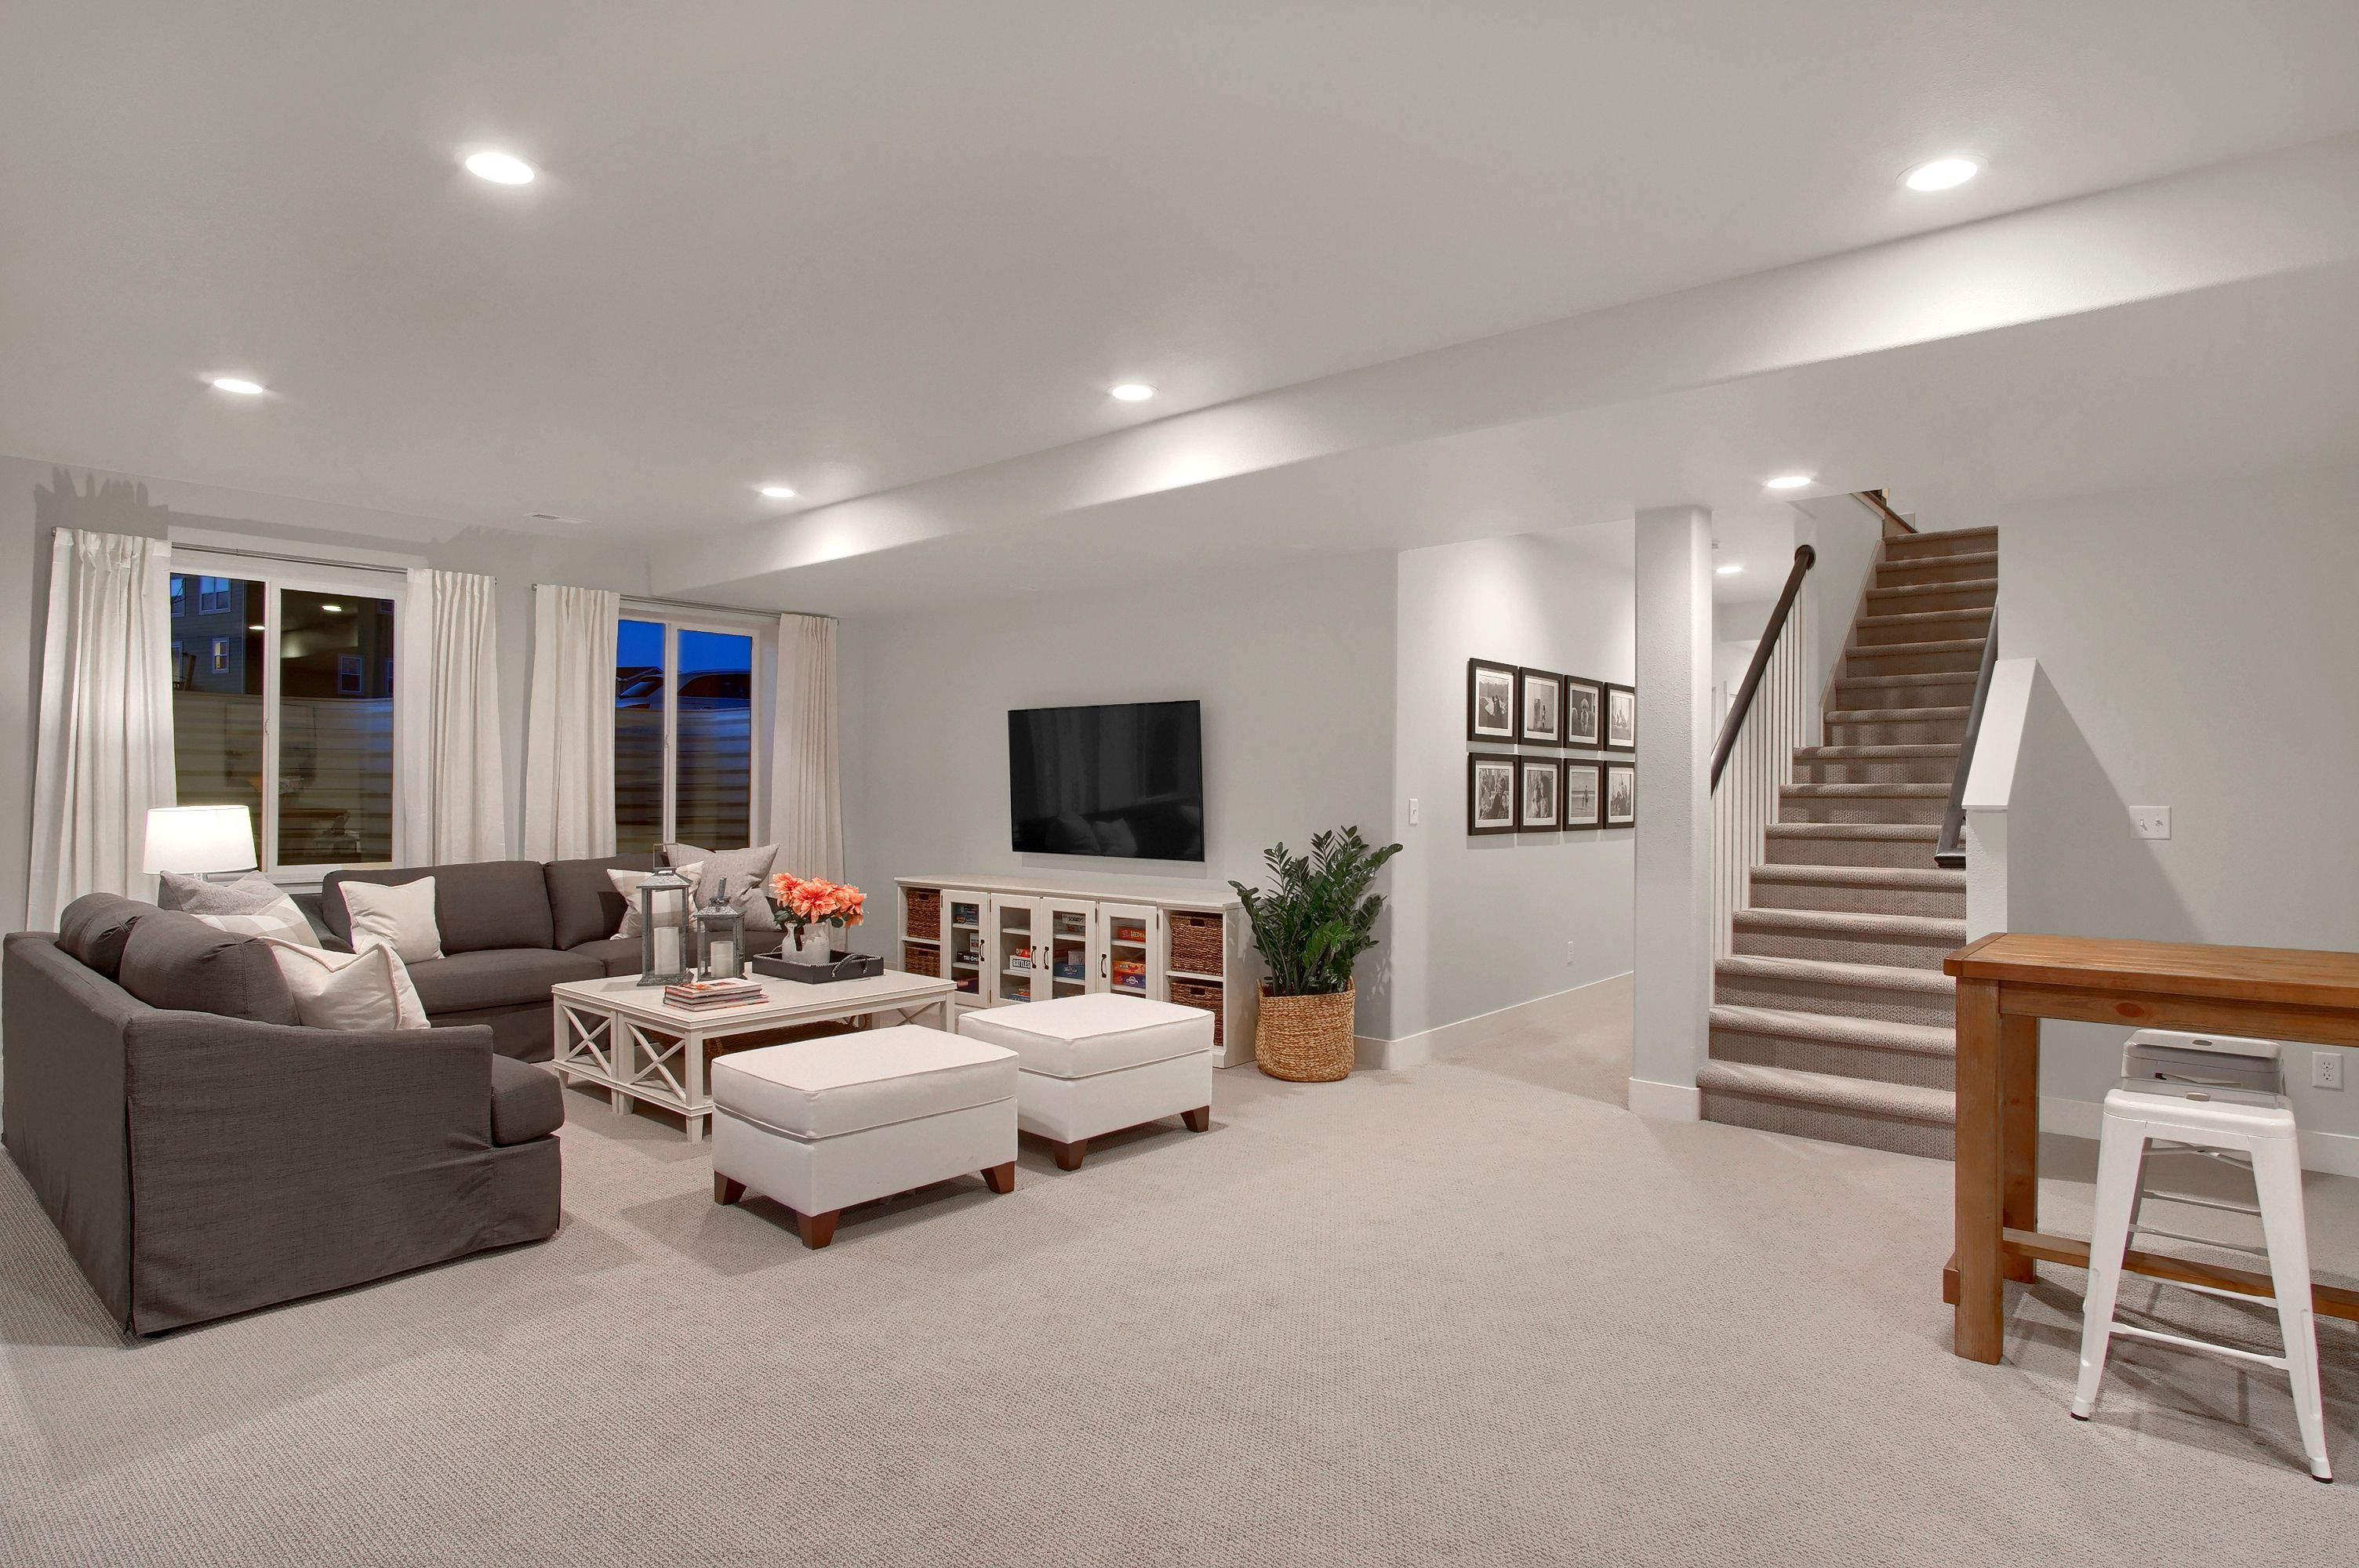 Finished Lower Level With Rec Room Flex Area 2 Bedrooms And Full Bath Mackintosh Basement Living Rooms Rec Room Remodel Basement Master Bedroom